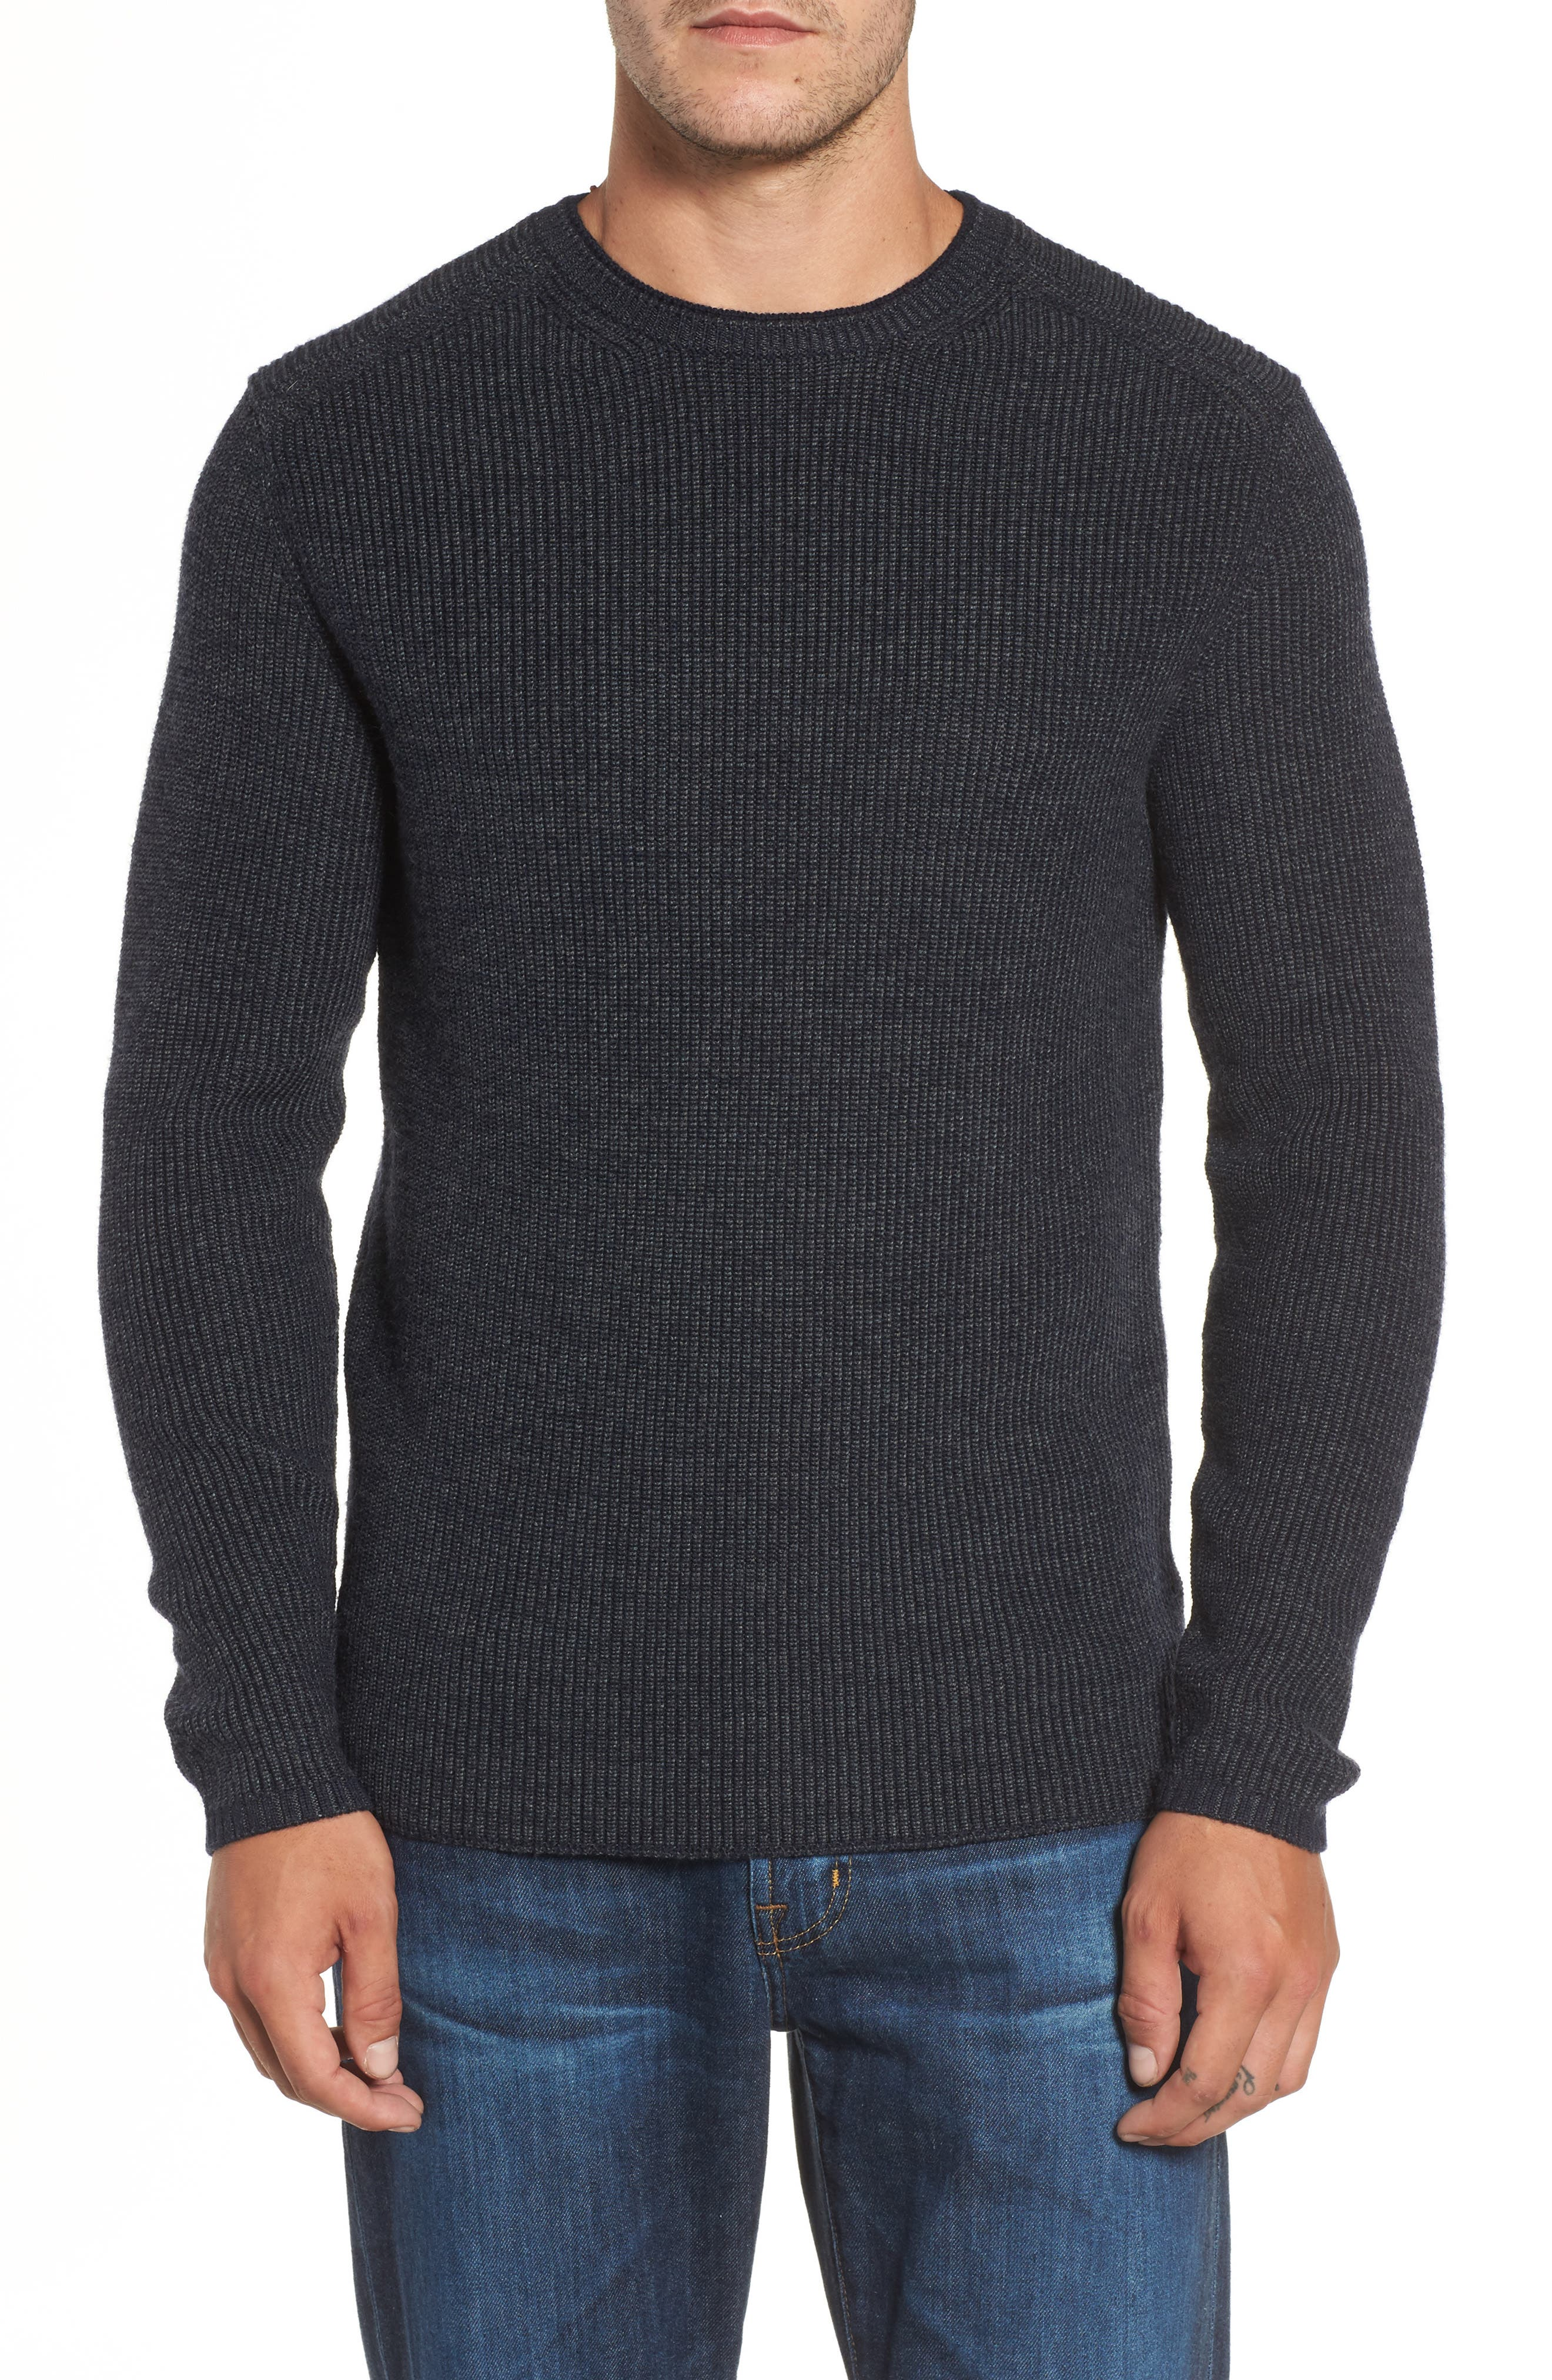 Whalers Bay Ribbed Merino Wool Sweater,                             Main thumbnail 1, color,                             Night